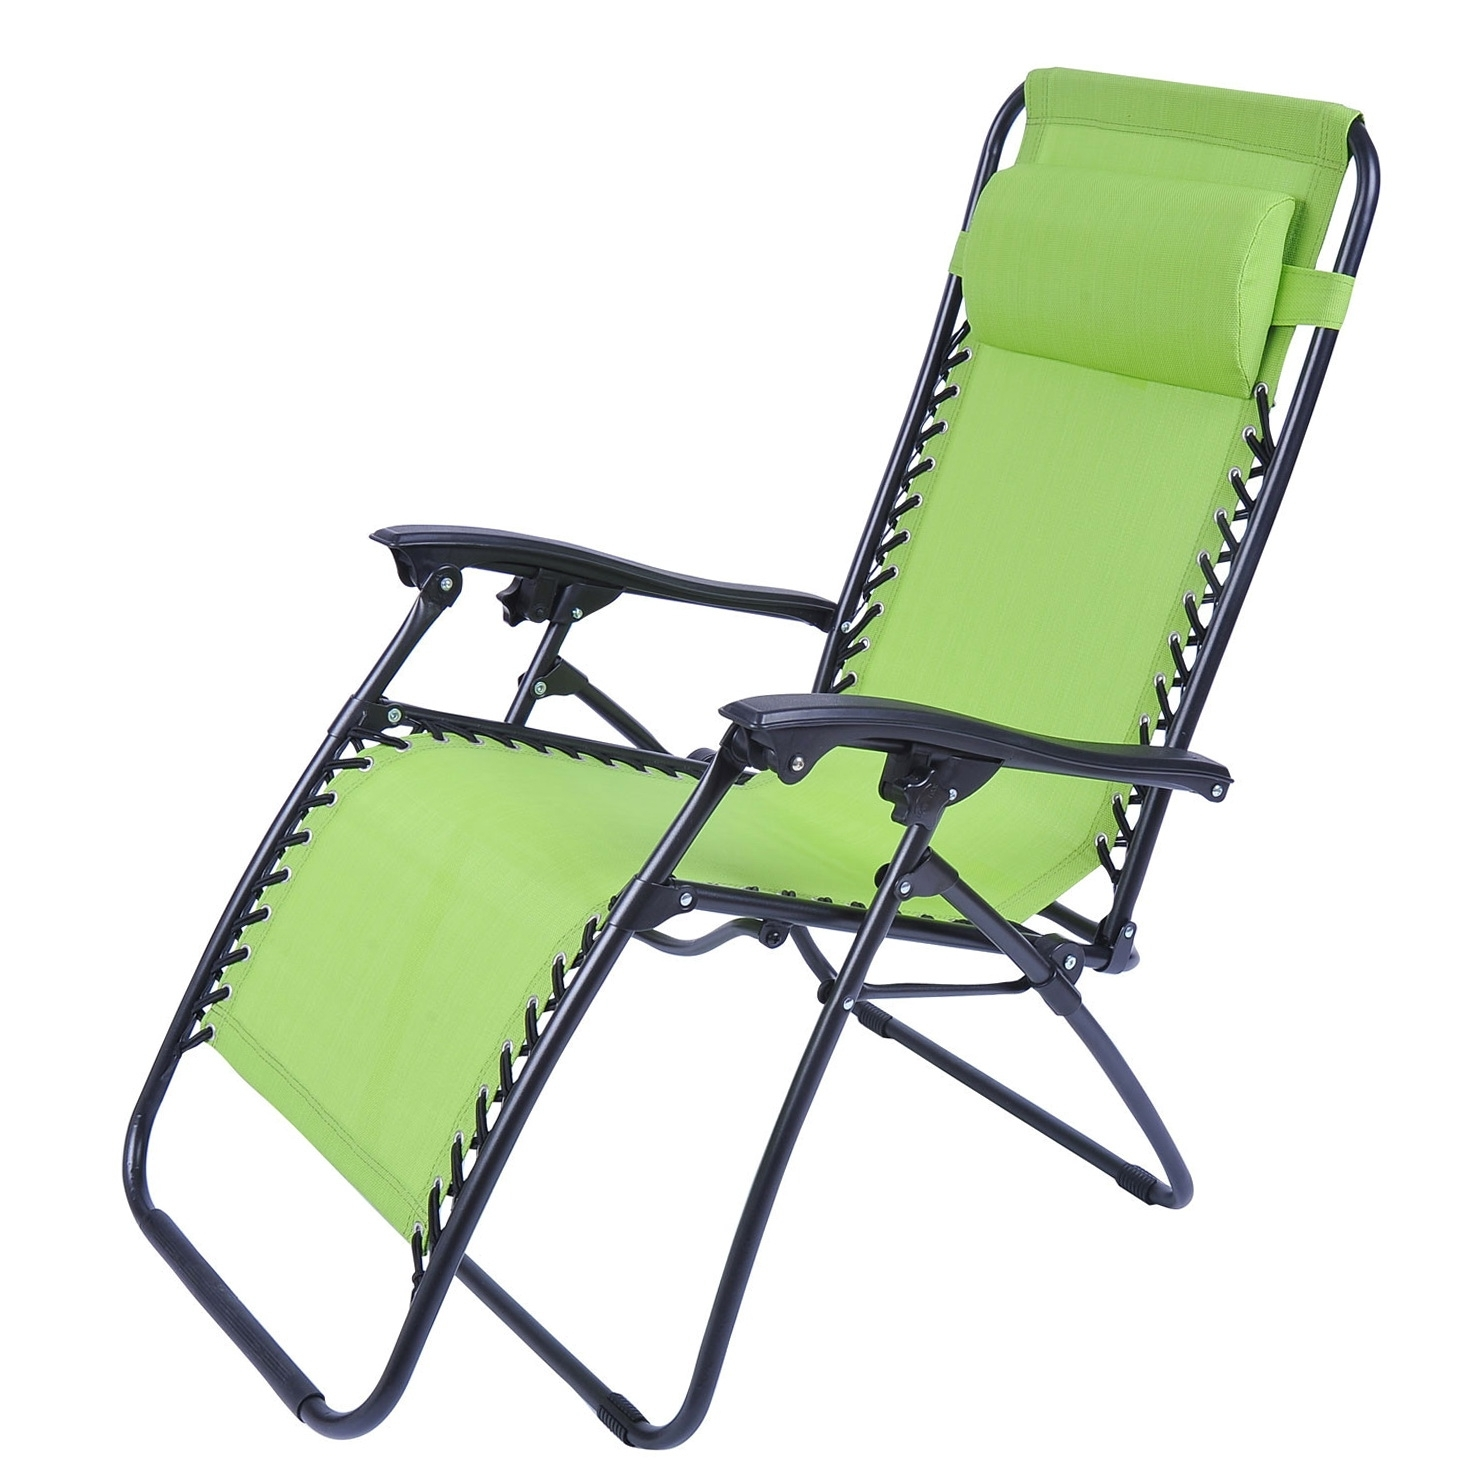 Recent Foldable Chaise Lounges Intended For Folding Chaise Lounge Chair Patio Outdoor Pool Beach Lawn Recliner (View 2 of 15)